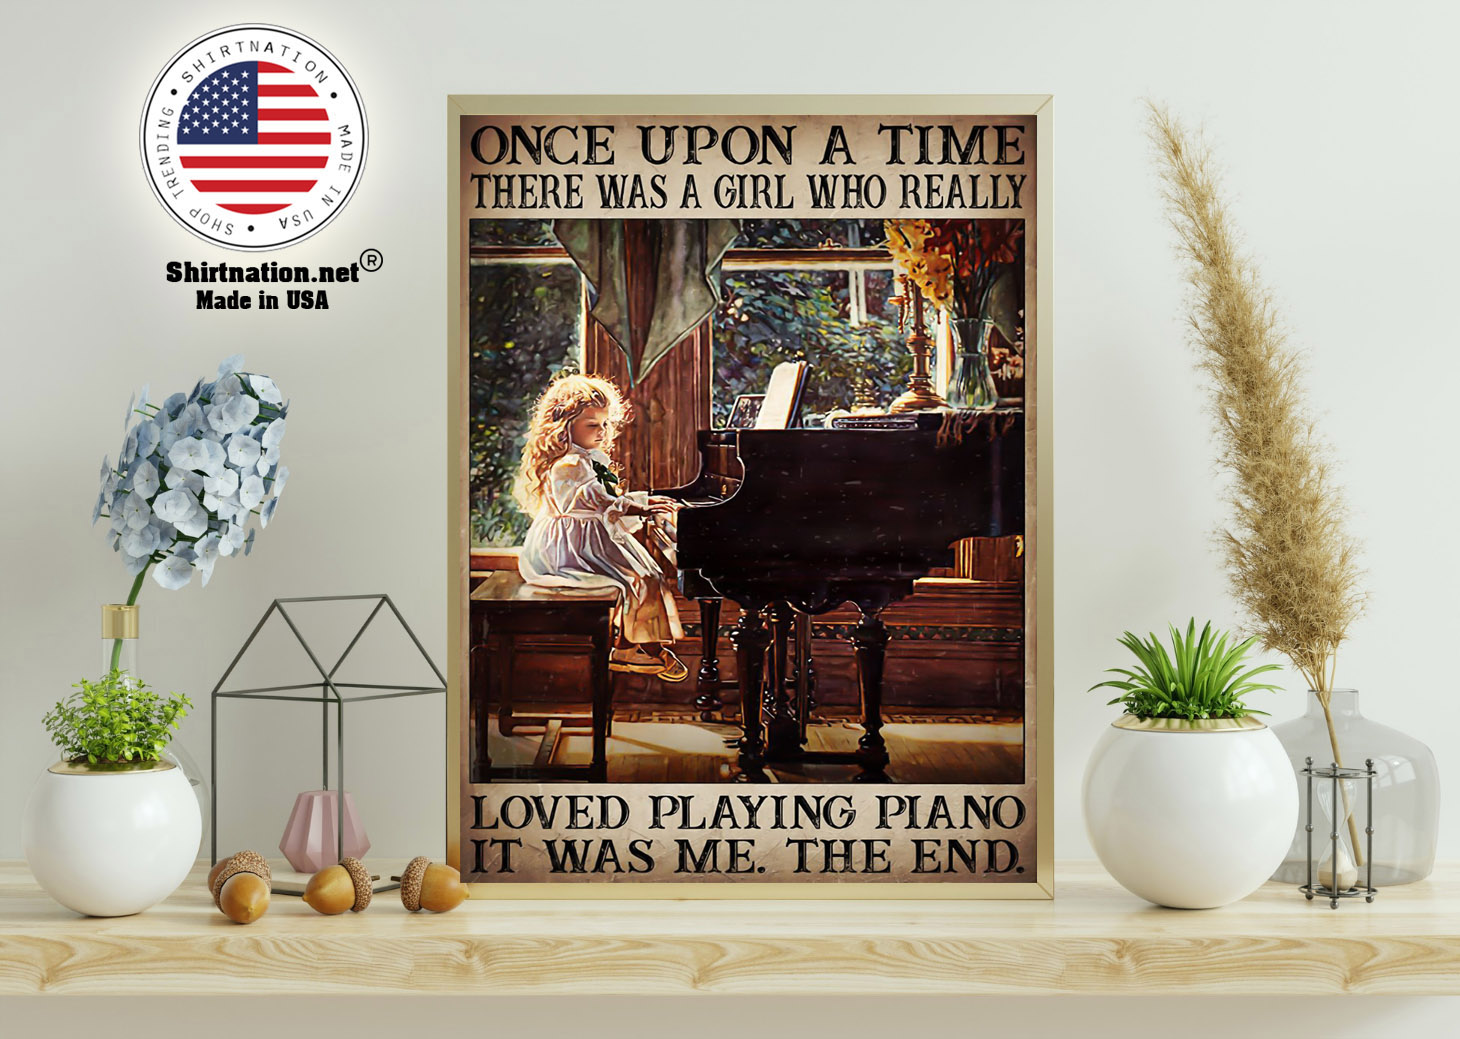 Once upon a time there was a girl who really loved playing piano poster 11